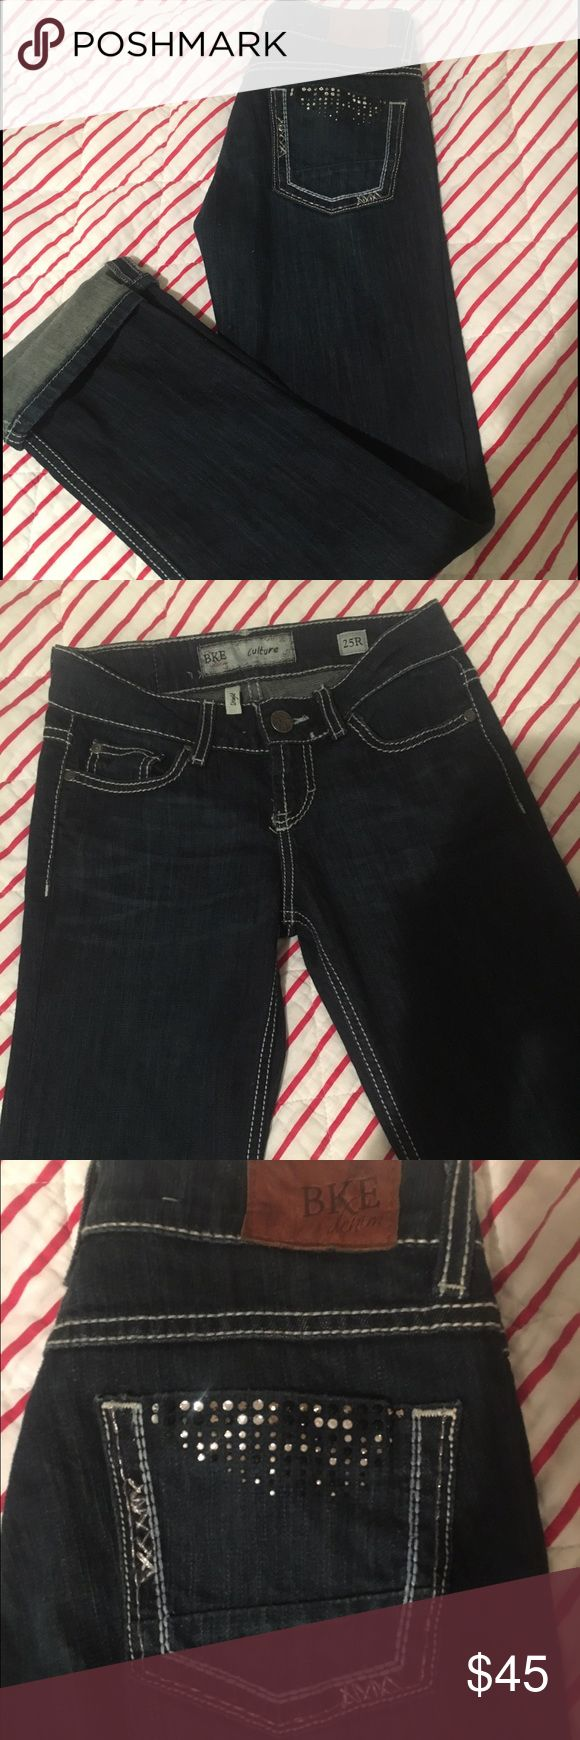 BKE Buckle Denim Jeans Straight leg BKE's, size 25. Never worn, purchased as a gift and they just don't fit me! All gems on back pockets are on, no rips, perfect condition. Super cute! BKE Pants Straight Leg